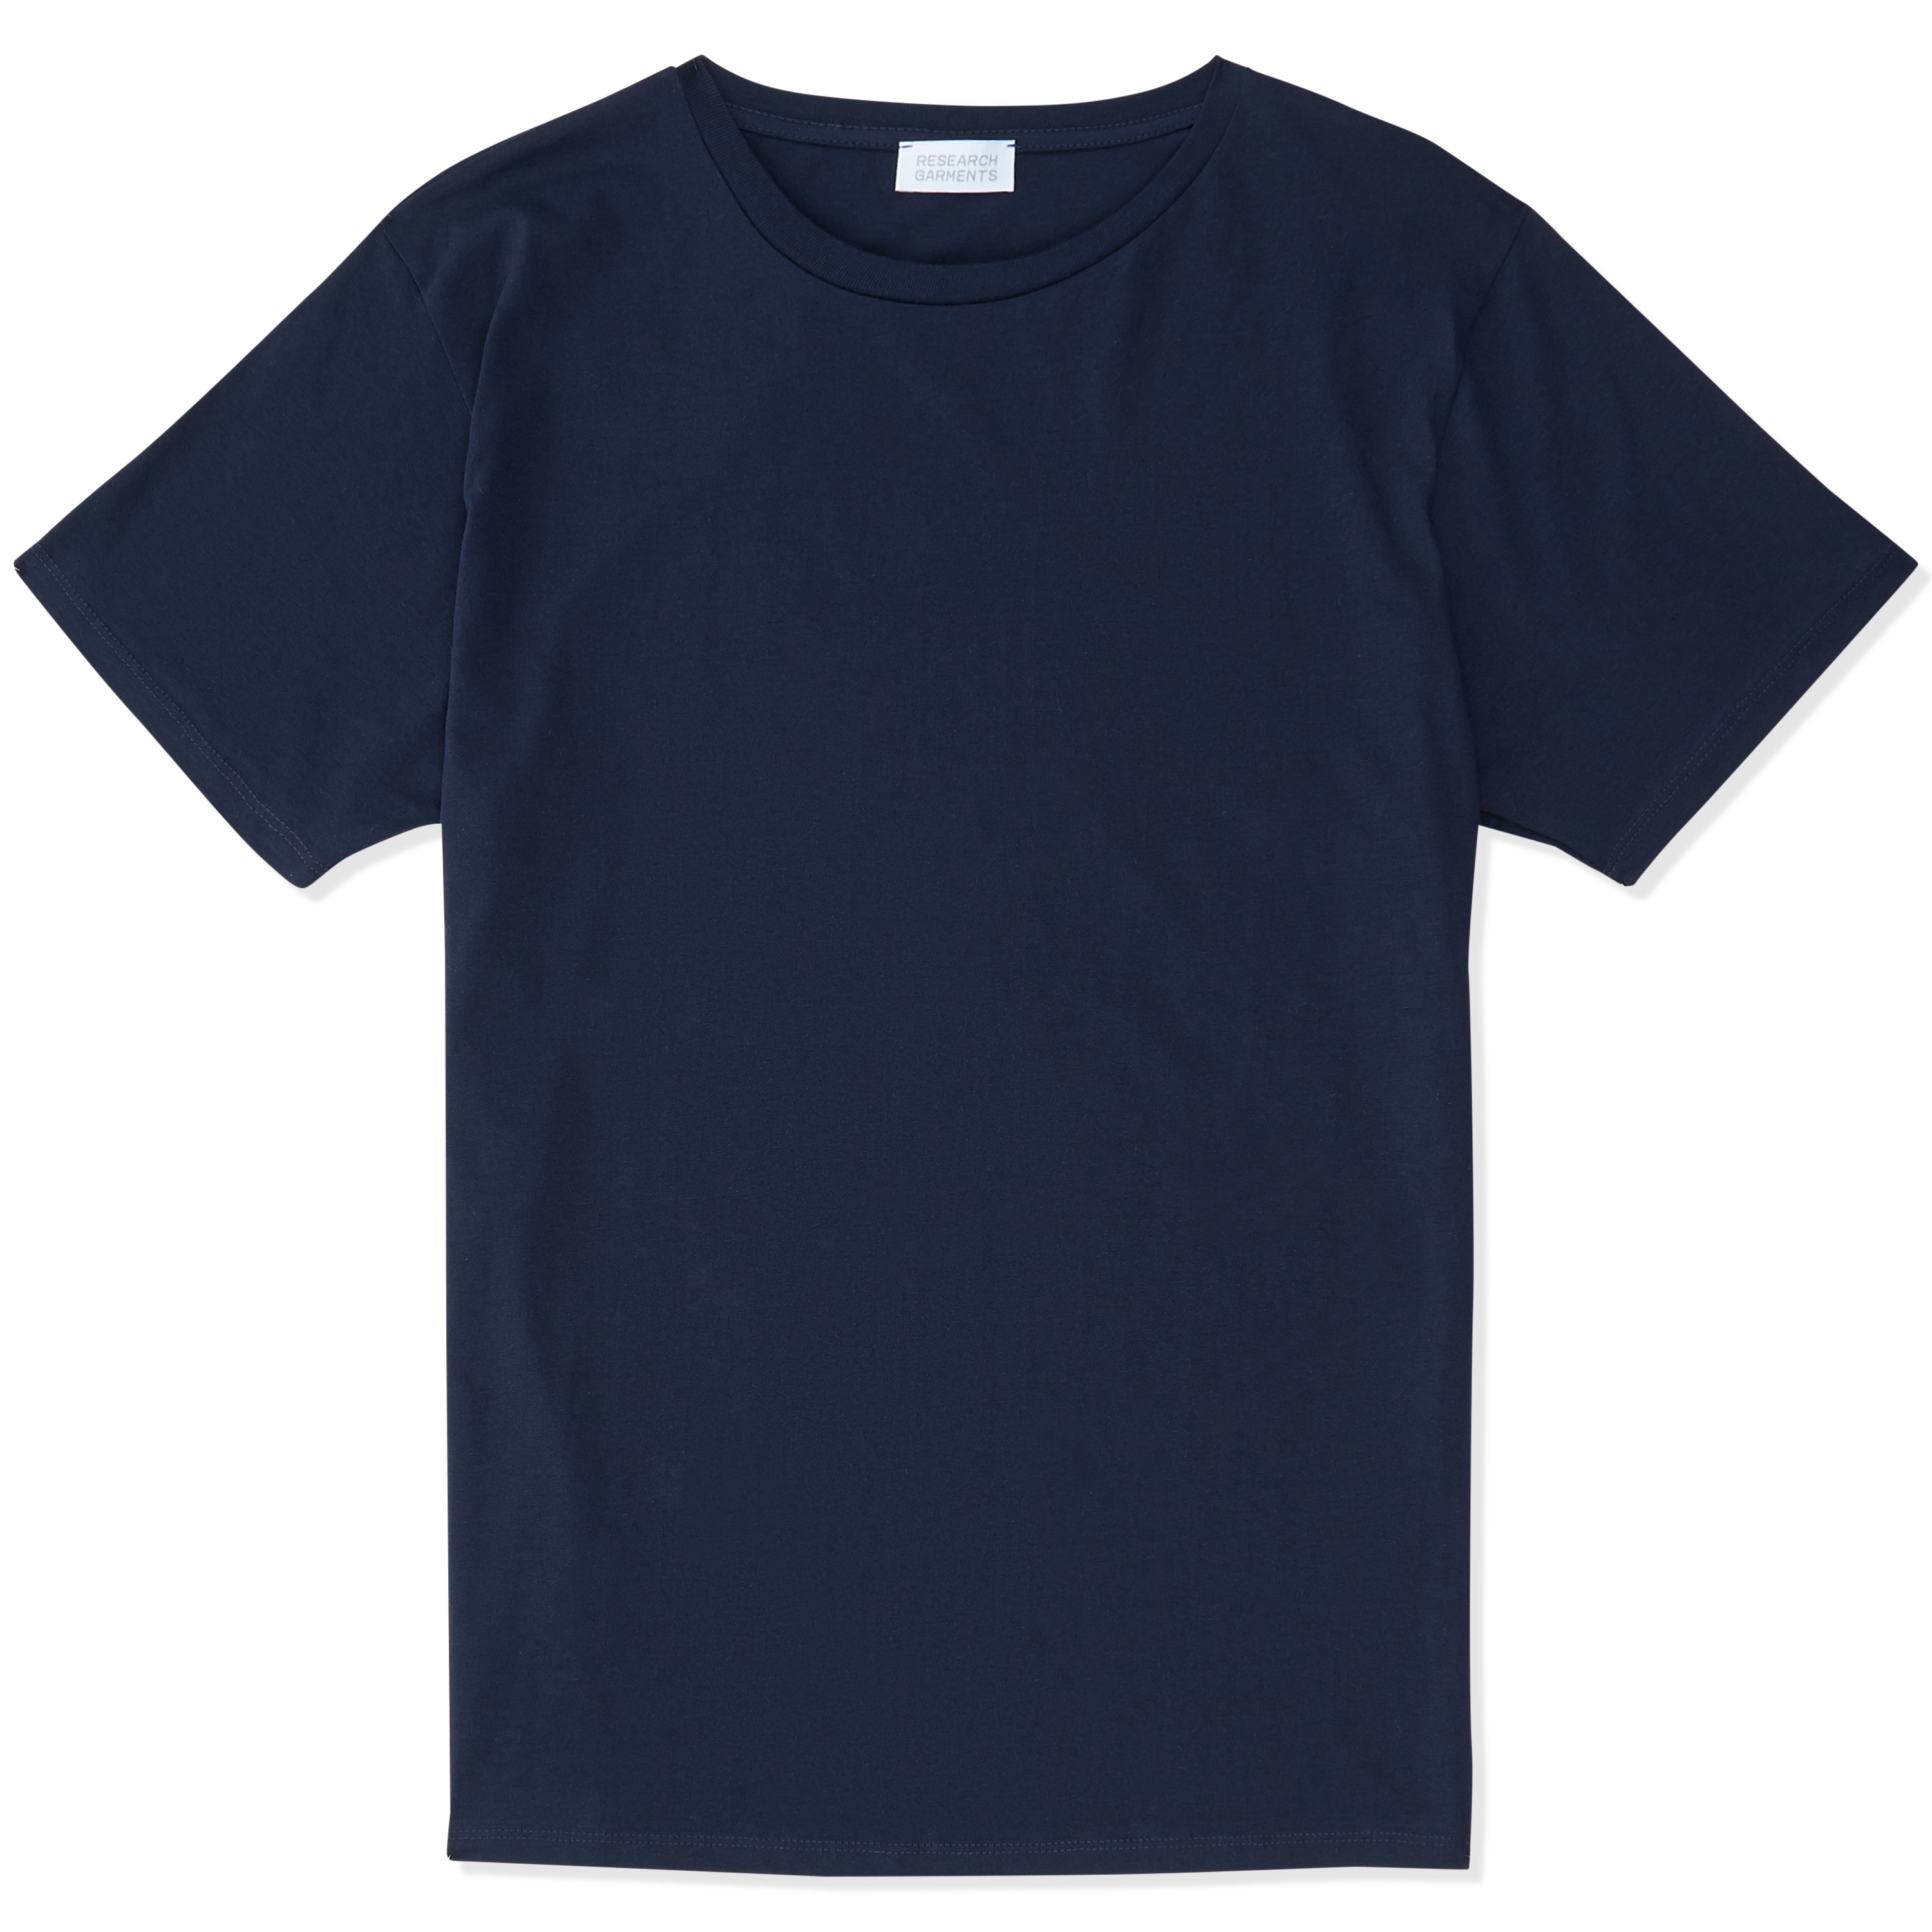 Research Garments The Perfect Navy T-shirt